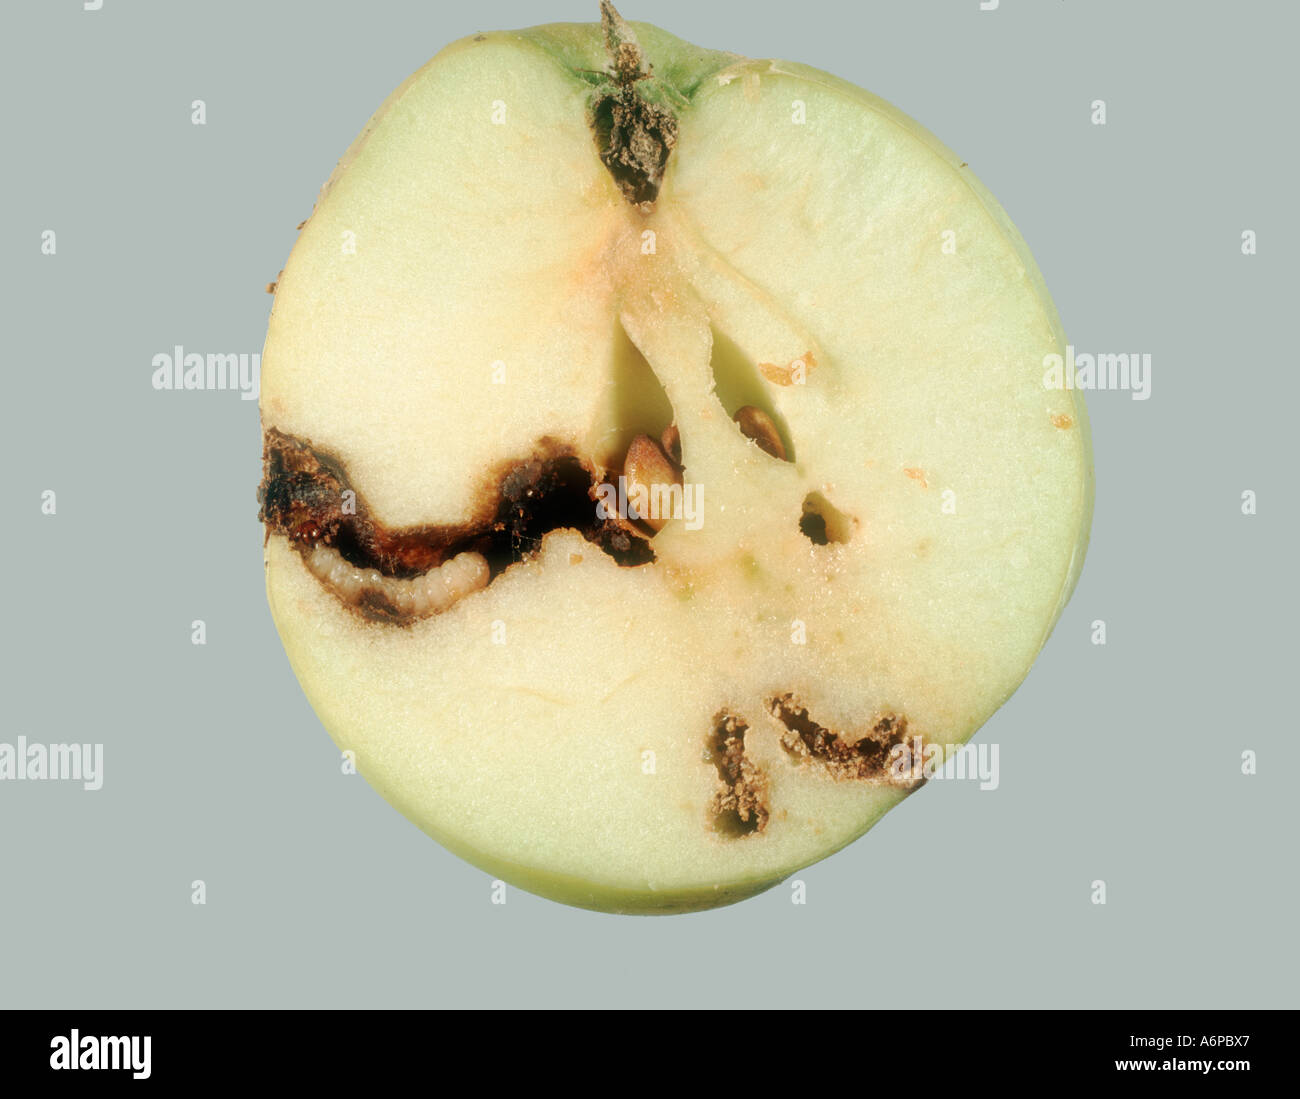 in addition Stock Photo Codling Moth Cydia Pomonella Caterpillar In Gallery In Apple Fruit 6643430 additionally Solution moreover Elan Organic F1 Strawberry Plugs 3969G moreover Project view. on produce id